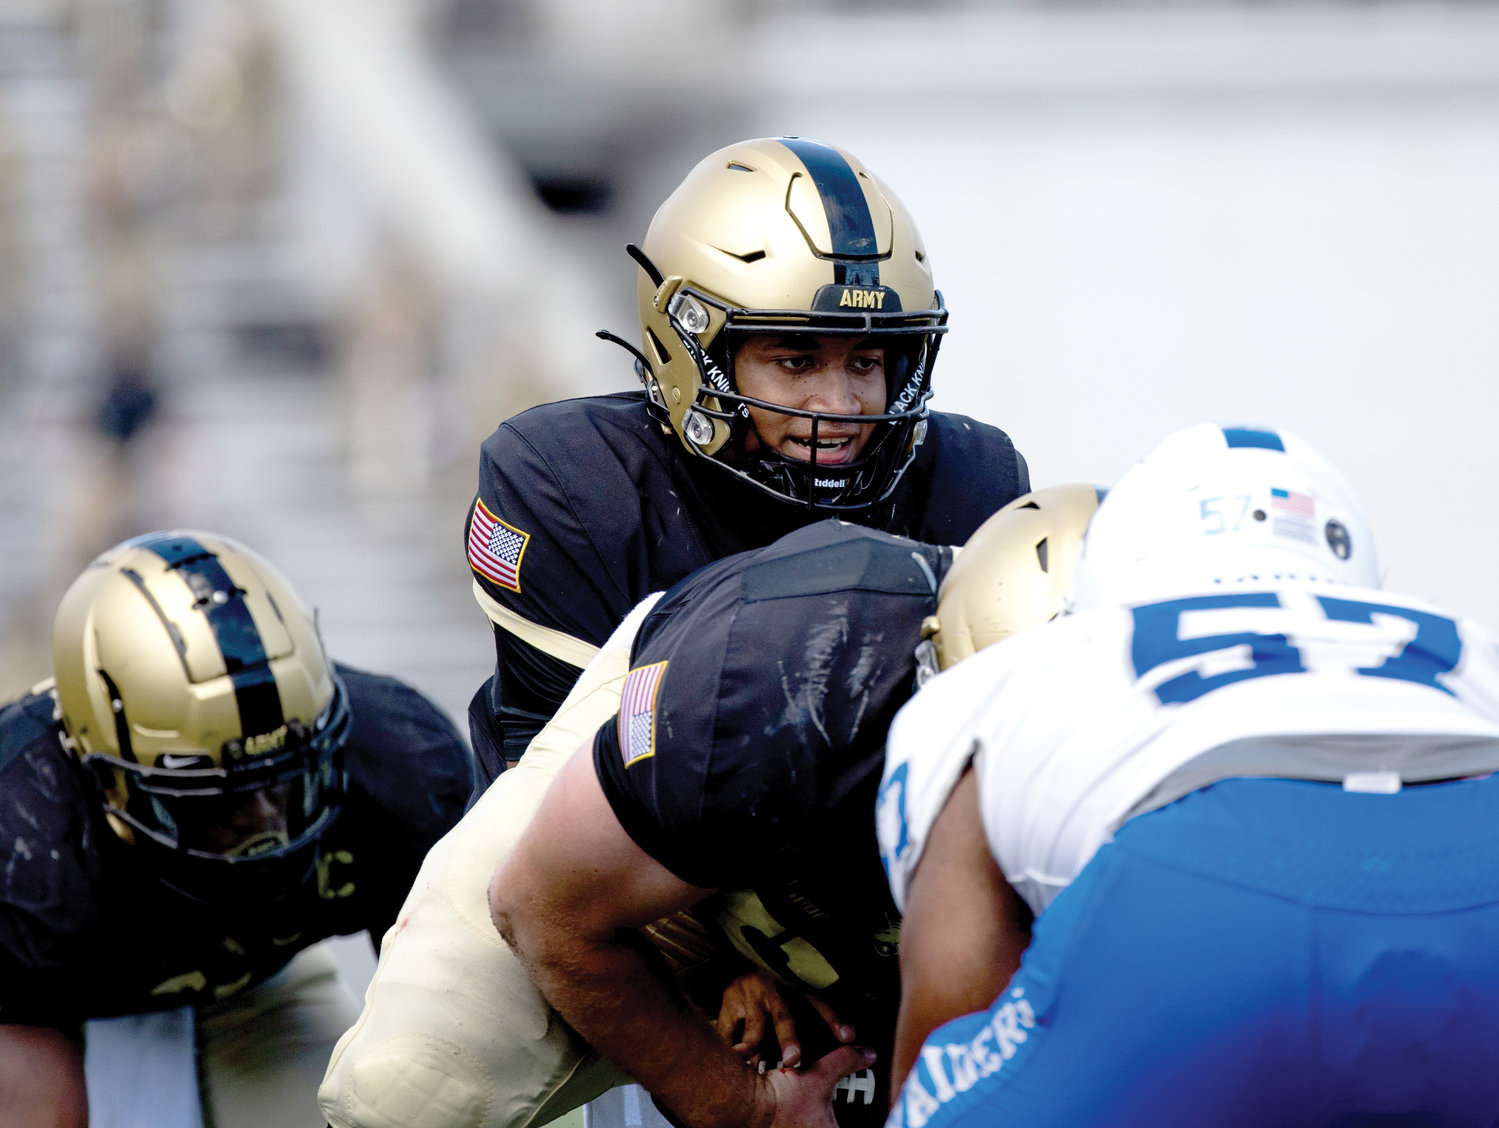 Cardinal Hayes High School graduate Christian Anderson takes a snap from center during Army's 42-0 victory over Middle Tennessee State in West Point Sept. 5. The junior quarterback ran for 51 yards and a touchdown.